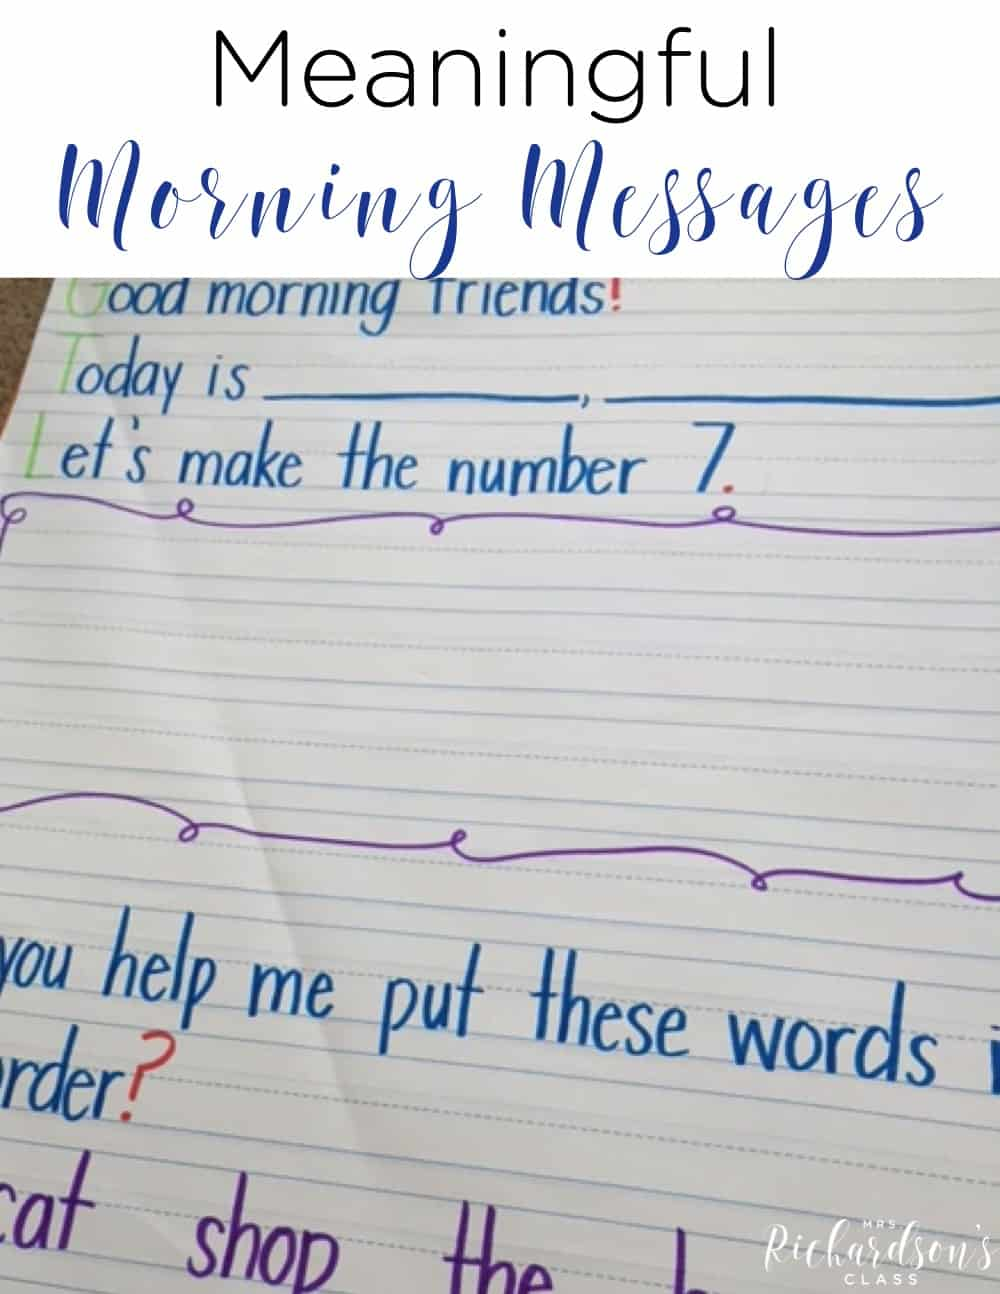 3 tips for meaningful morning messages that are simple to implement!